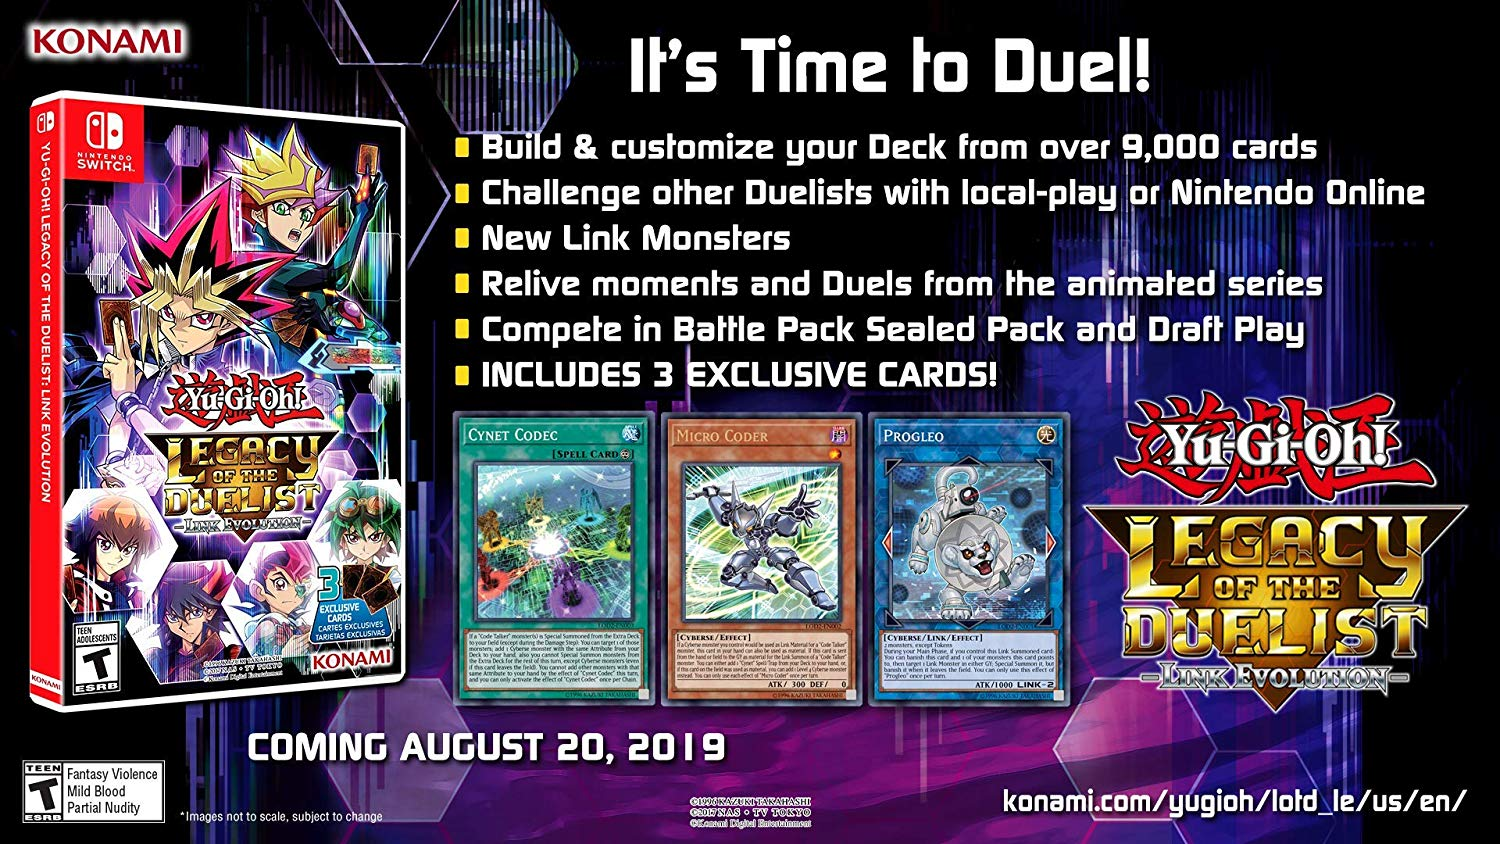 Yu-Gi-Oh! Legacy of the Duelist: Link Evolution boxart, pre-orders open